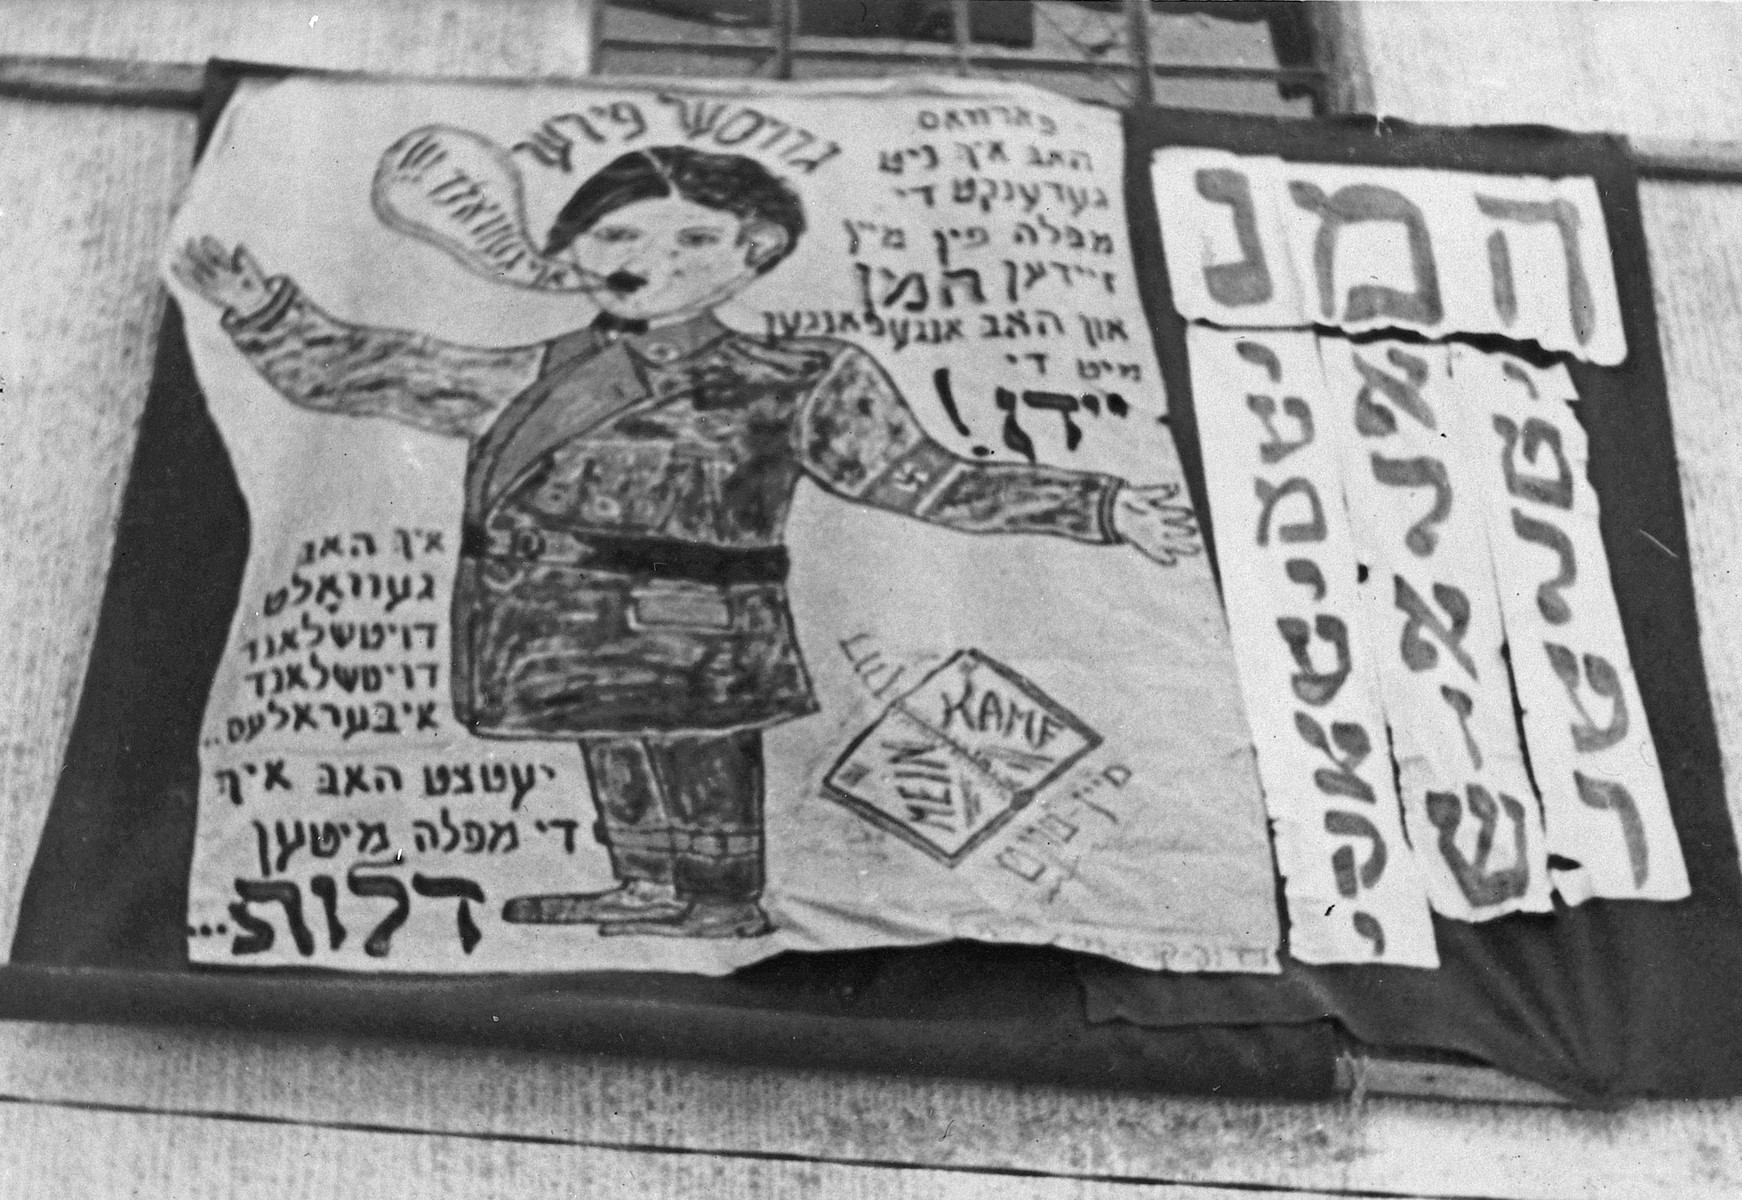 """Photograph of a banner in the Landsberg DP camp with a cartoon illustration of Hitler hung during a celebration of the Purim holiday.  Tha caption reads """"Why didn't I remember the downfall of my grandfather Haman and not get involved with the Jews?""""  There is then a short rhyme that translates as """"Deutschland, Deutschland uber alles, Now I have the downfall."""""""